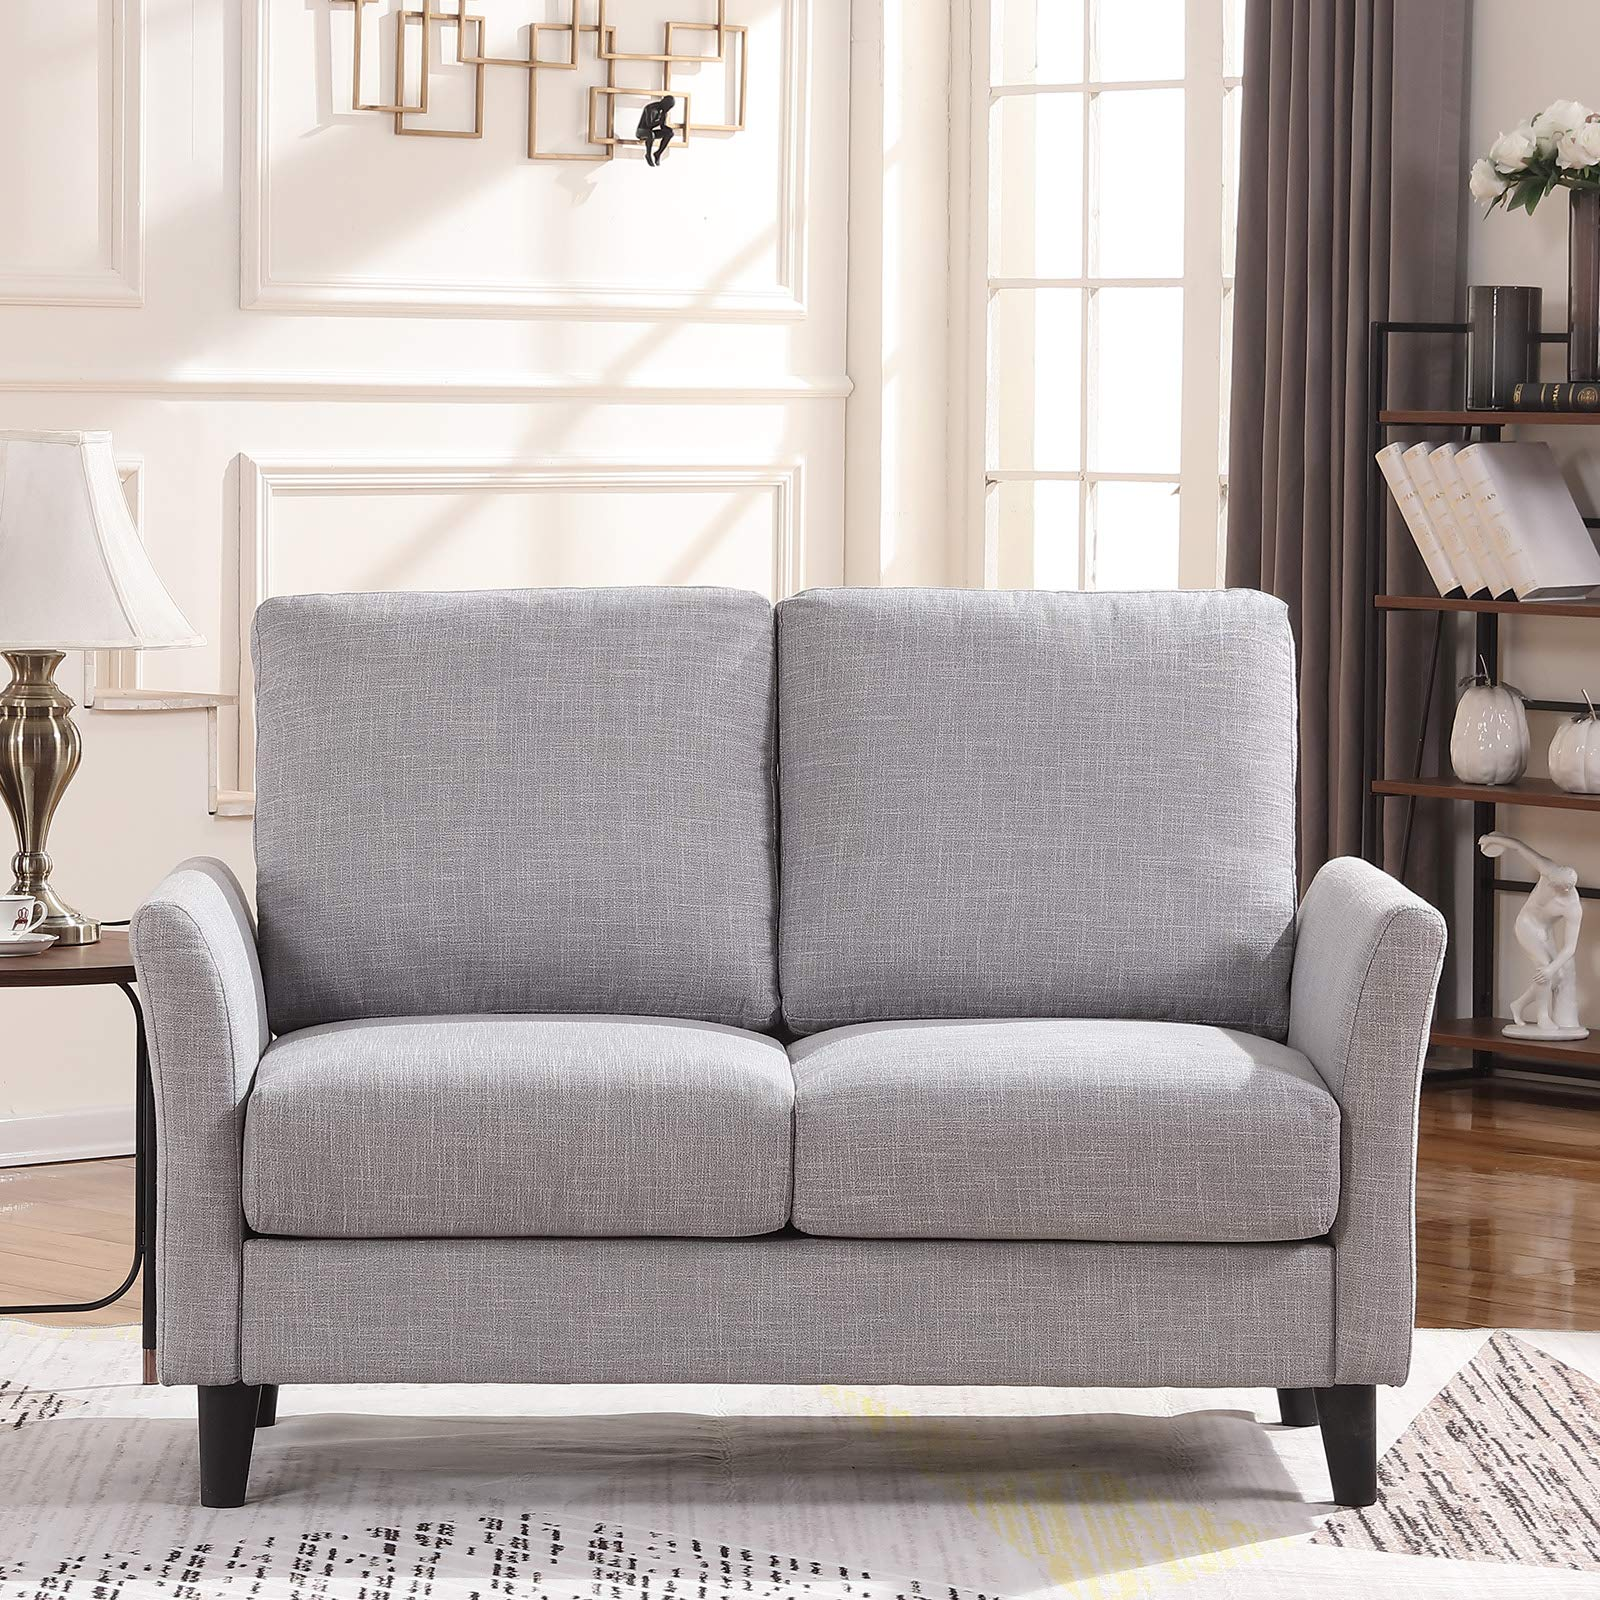 HONBAY Contemporary Upholstered 54'' in Sofa Couch Loveseat, Light Grey by Generic